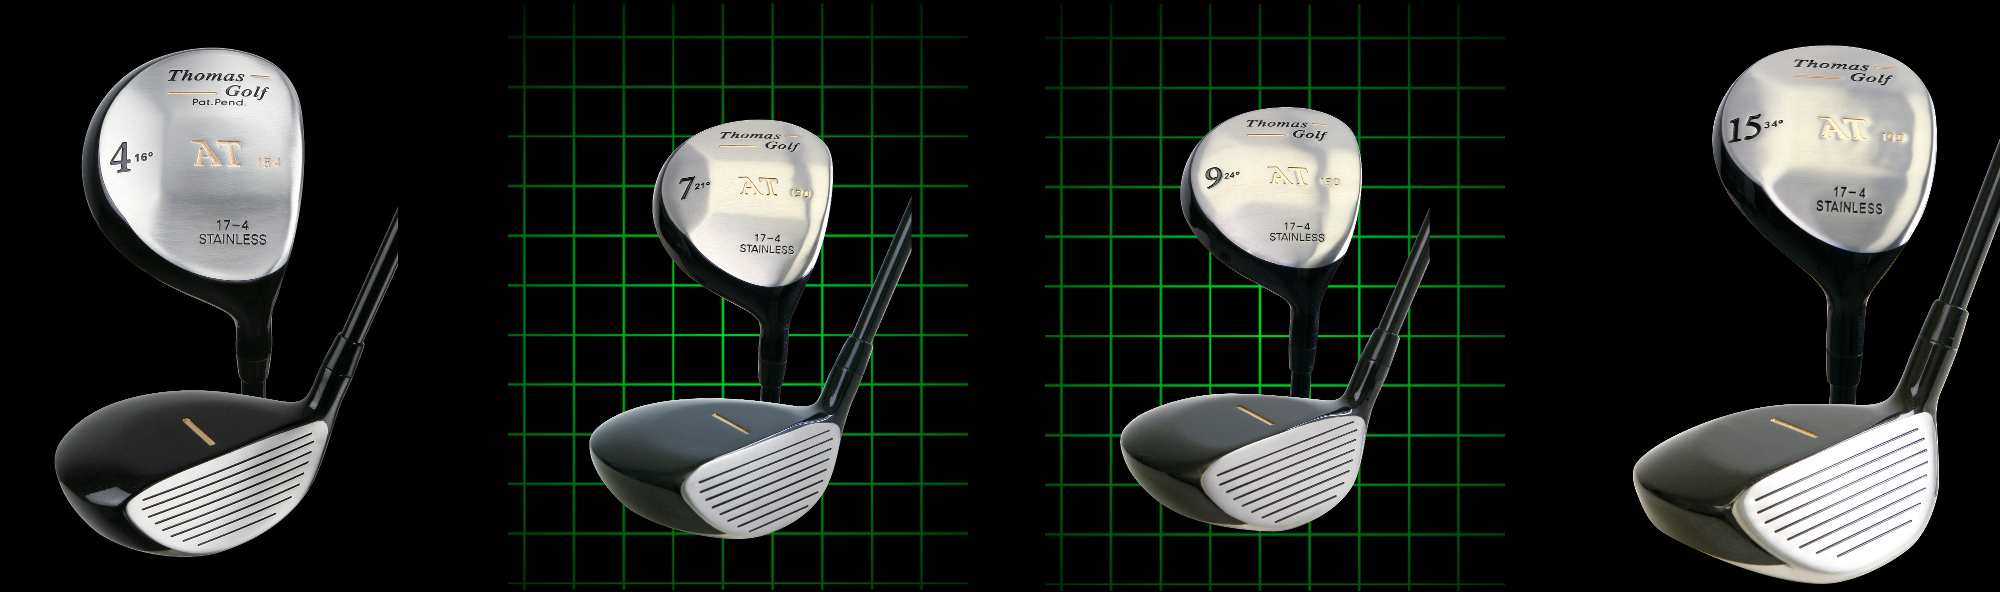 Thomas Golf Fairway Woods Chart with what Fairway Wood Replaces and is Equivalent to our Standard Irons